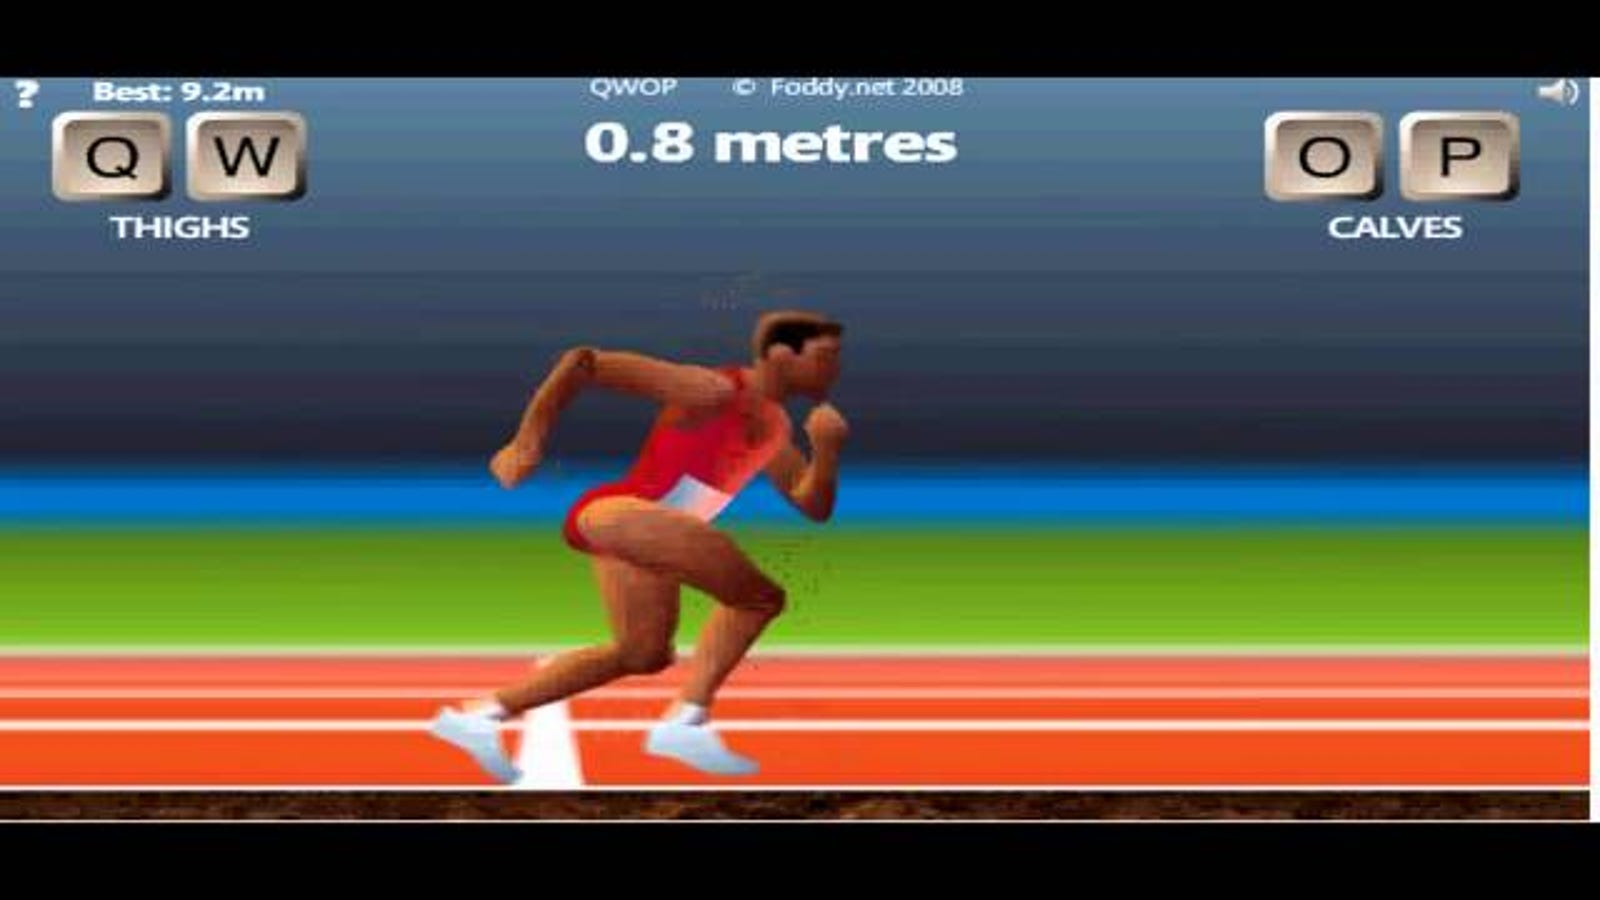 Qwop is one of lifes hardest activities ccuart Image collections